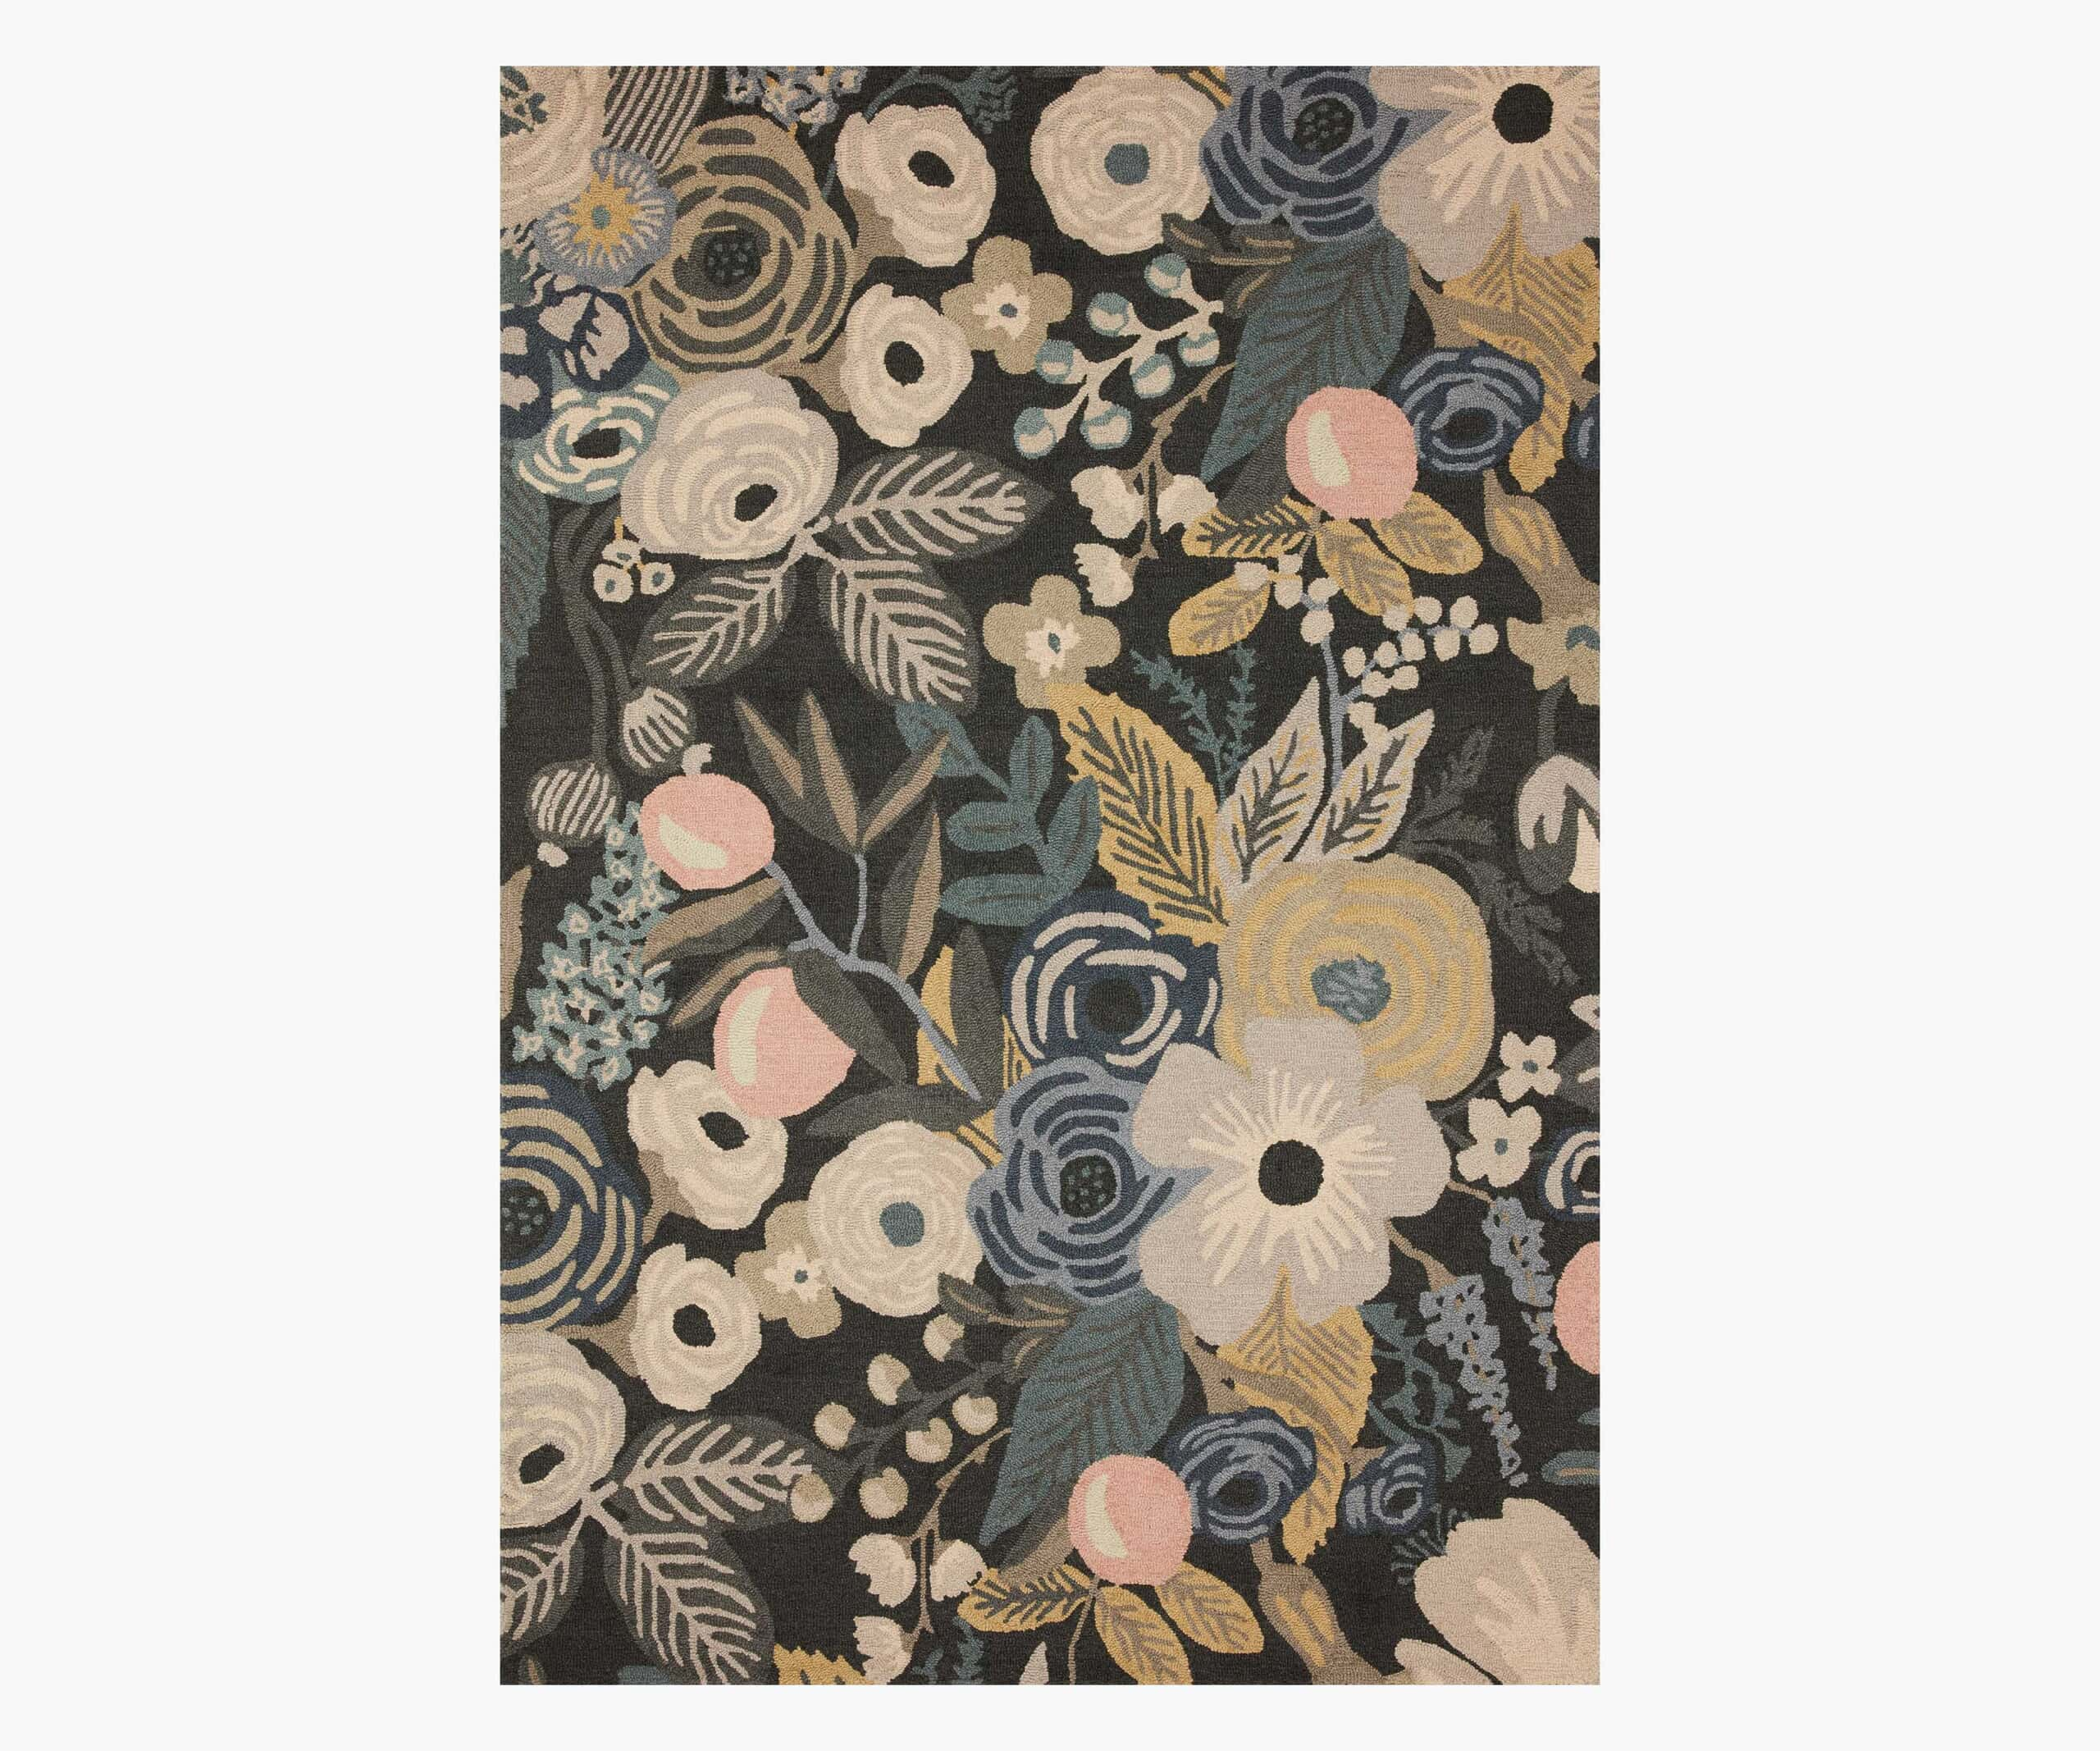 Rifle Paper Co. x Loloi Joie Rug - Garden Party Grey Rug Rifle Paper Co.